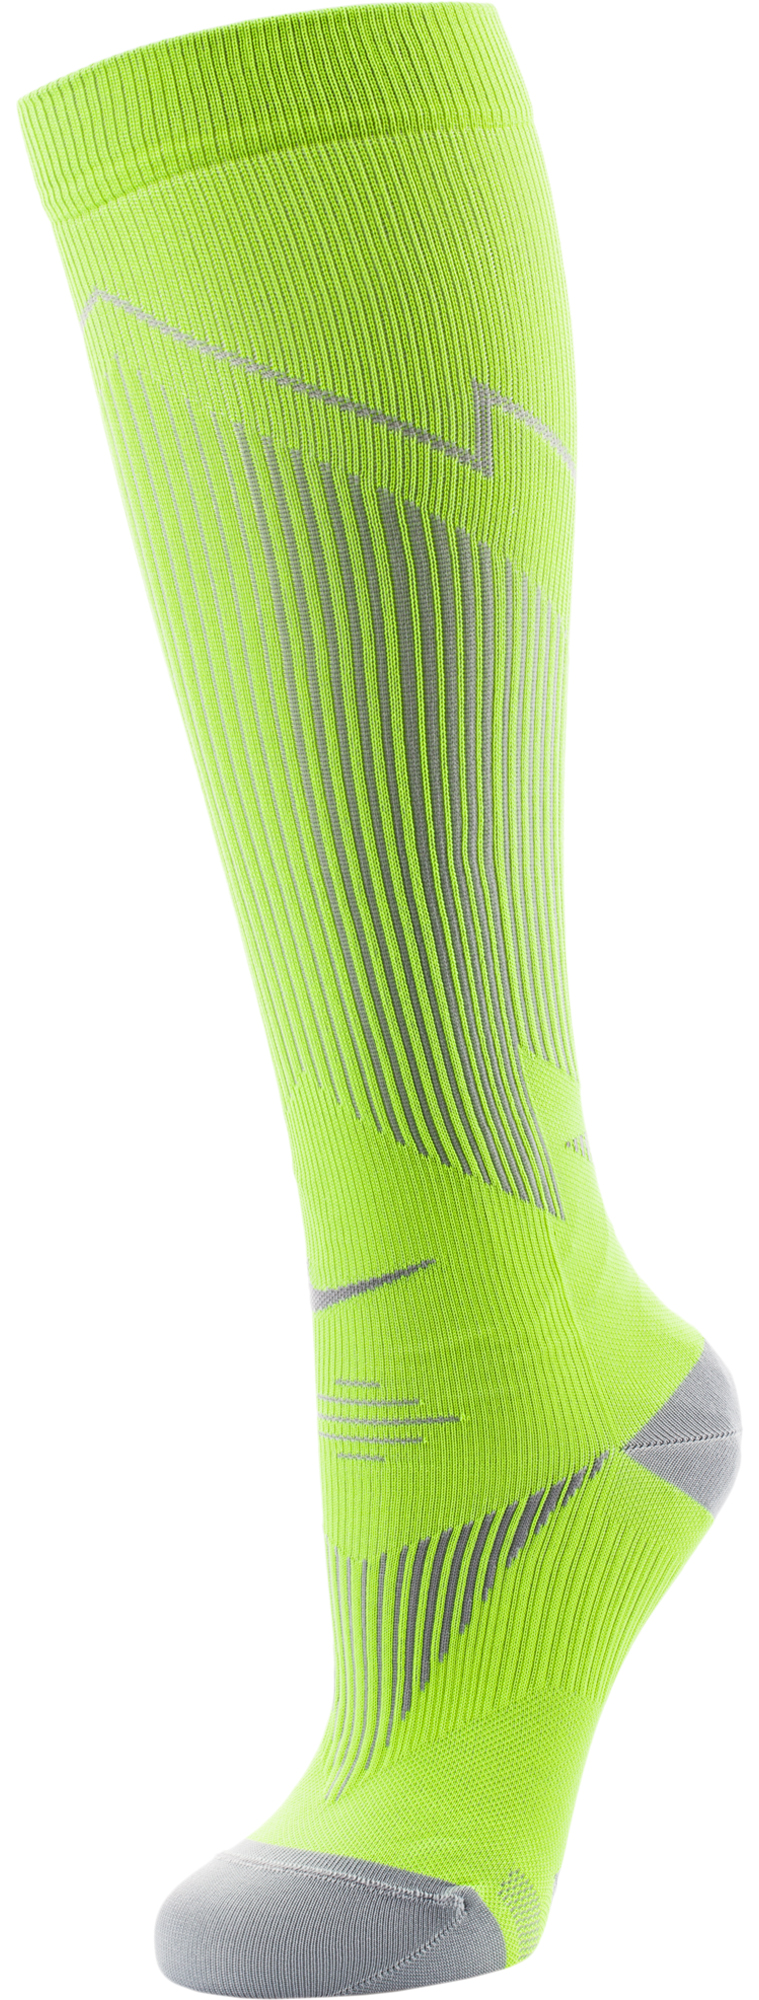 Nike Гольфы мужские Nike Elite Compression Over-the-Calf, 1 пара чулок д щитков nike guard lock elite sleeve su12 se0173 011 m чёрный